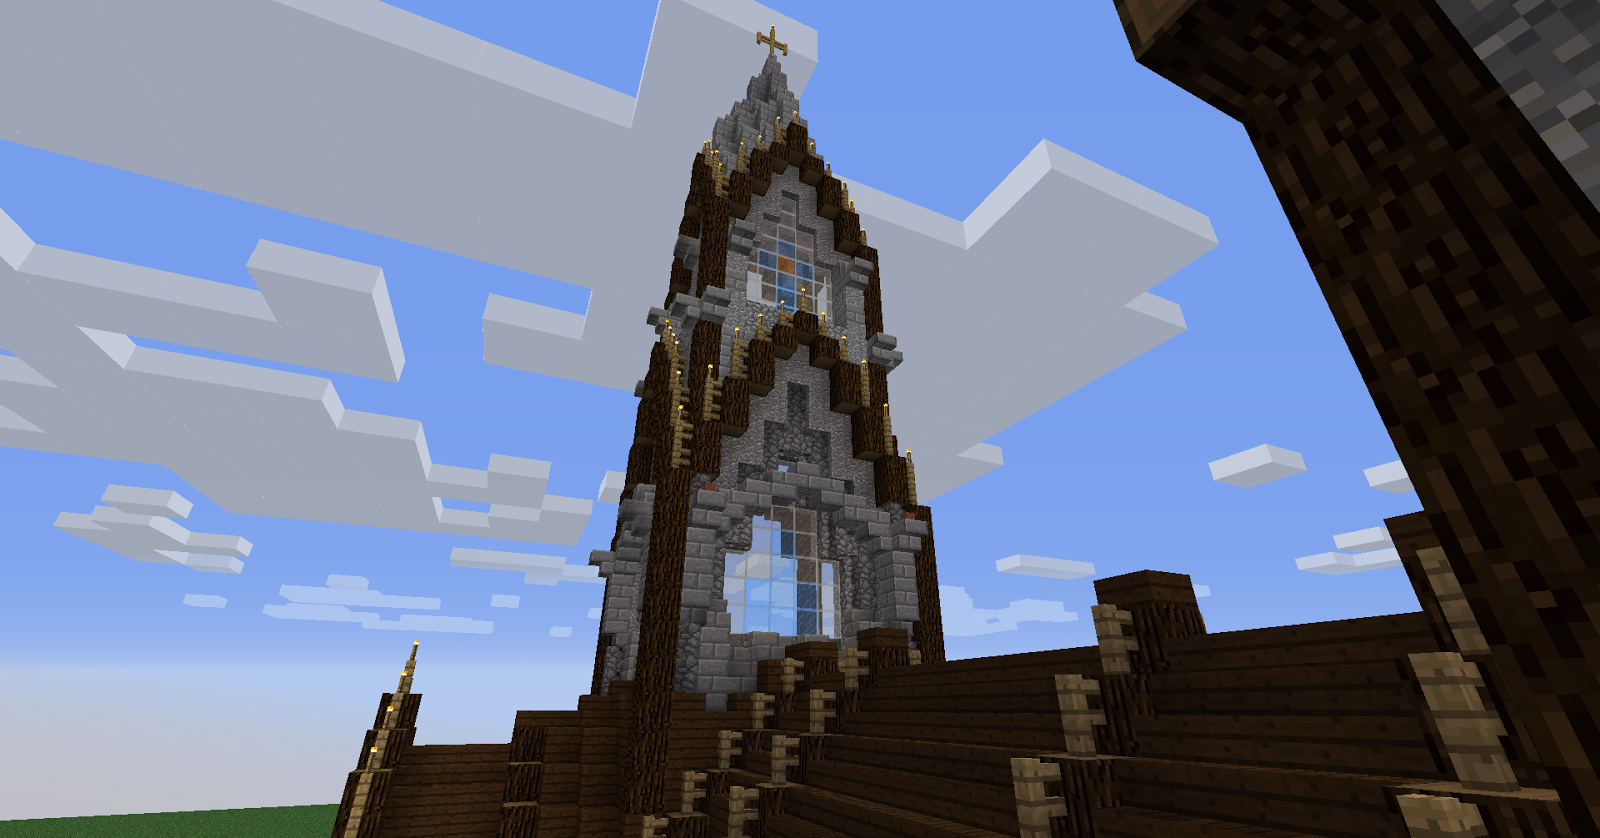 The art of architecture minecraft architecture barbarossa cathedral - Minecraft and architecture ...